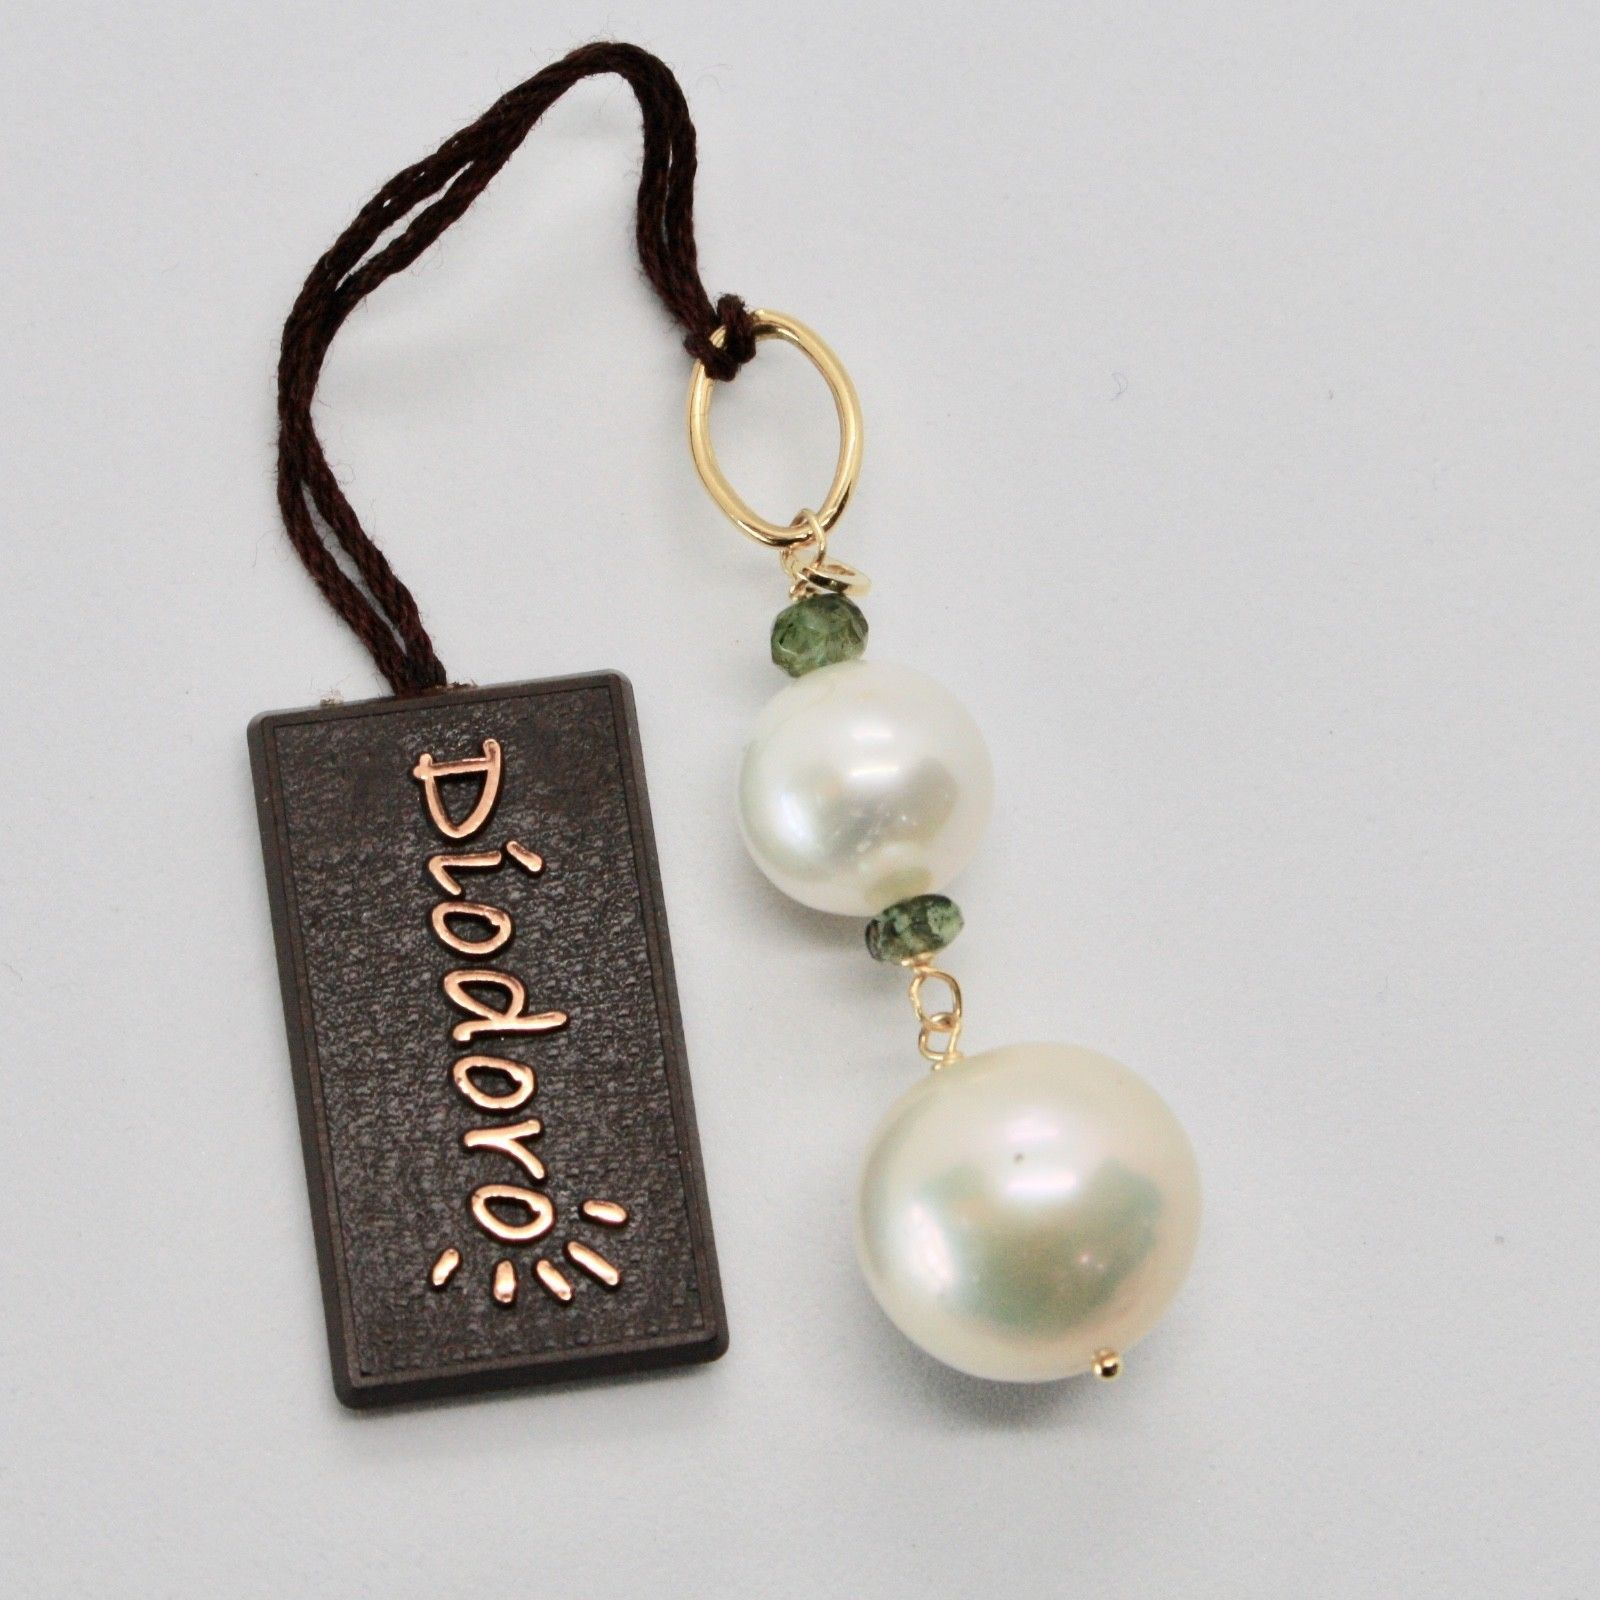 PENDANT YELLOW GOLD 18KT WITH WHITE PEARLS FRESH WATER AND TOURMALINE GREEN